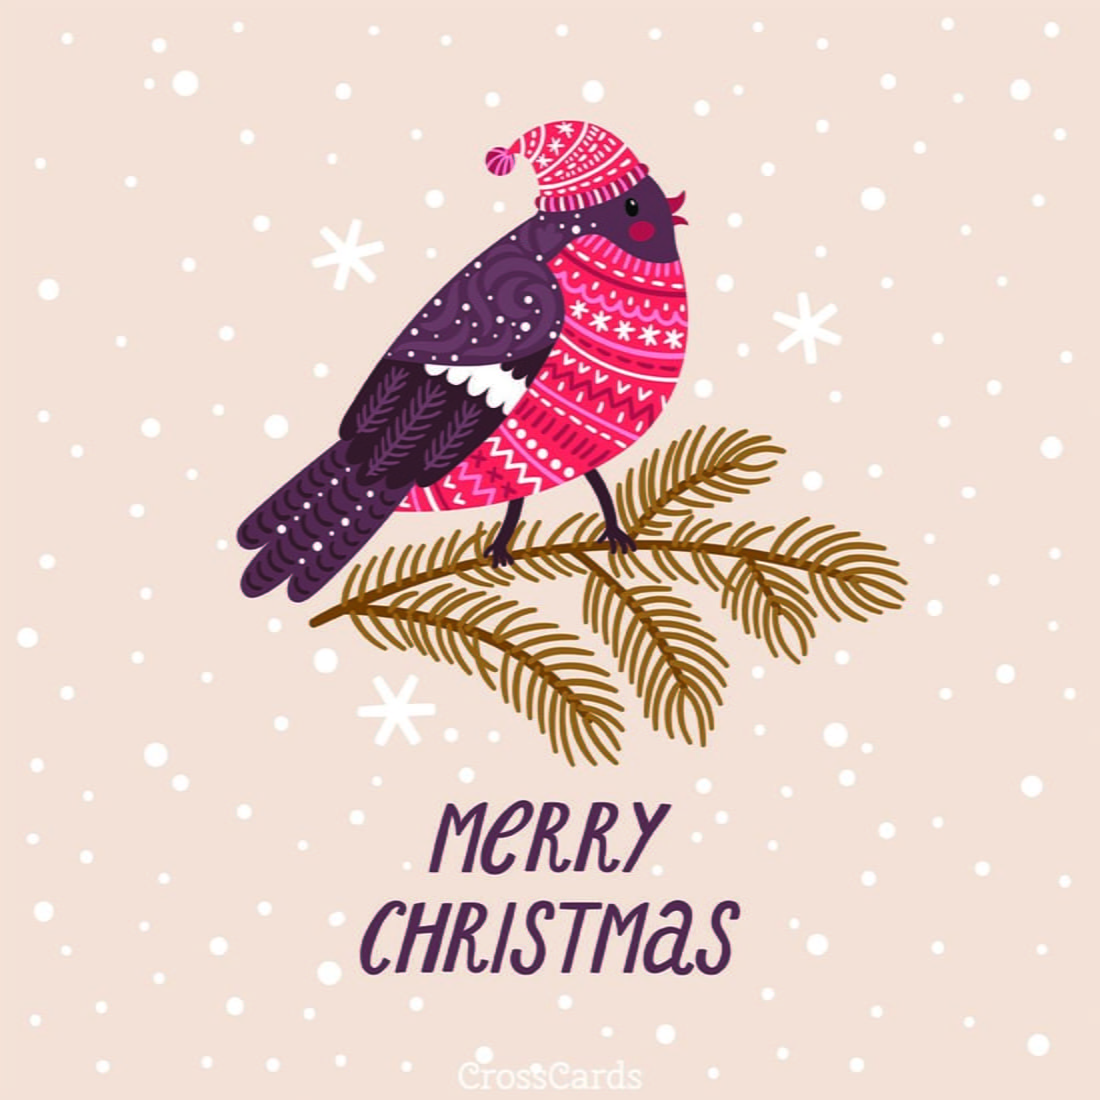 Merry Christmas Ecard Online Card